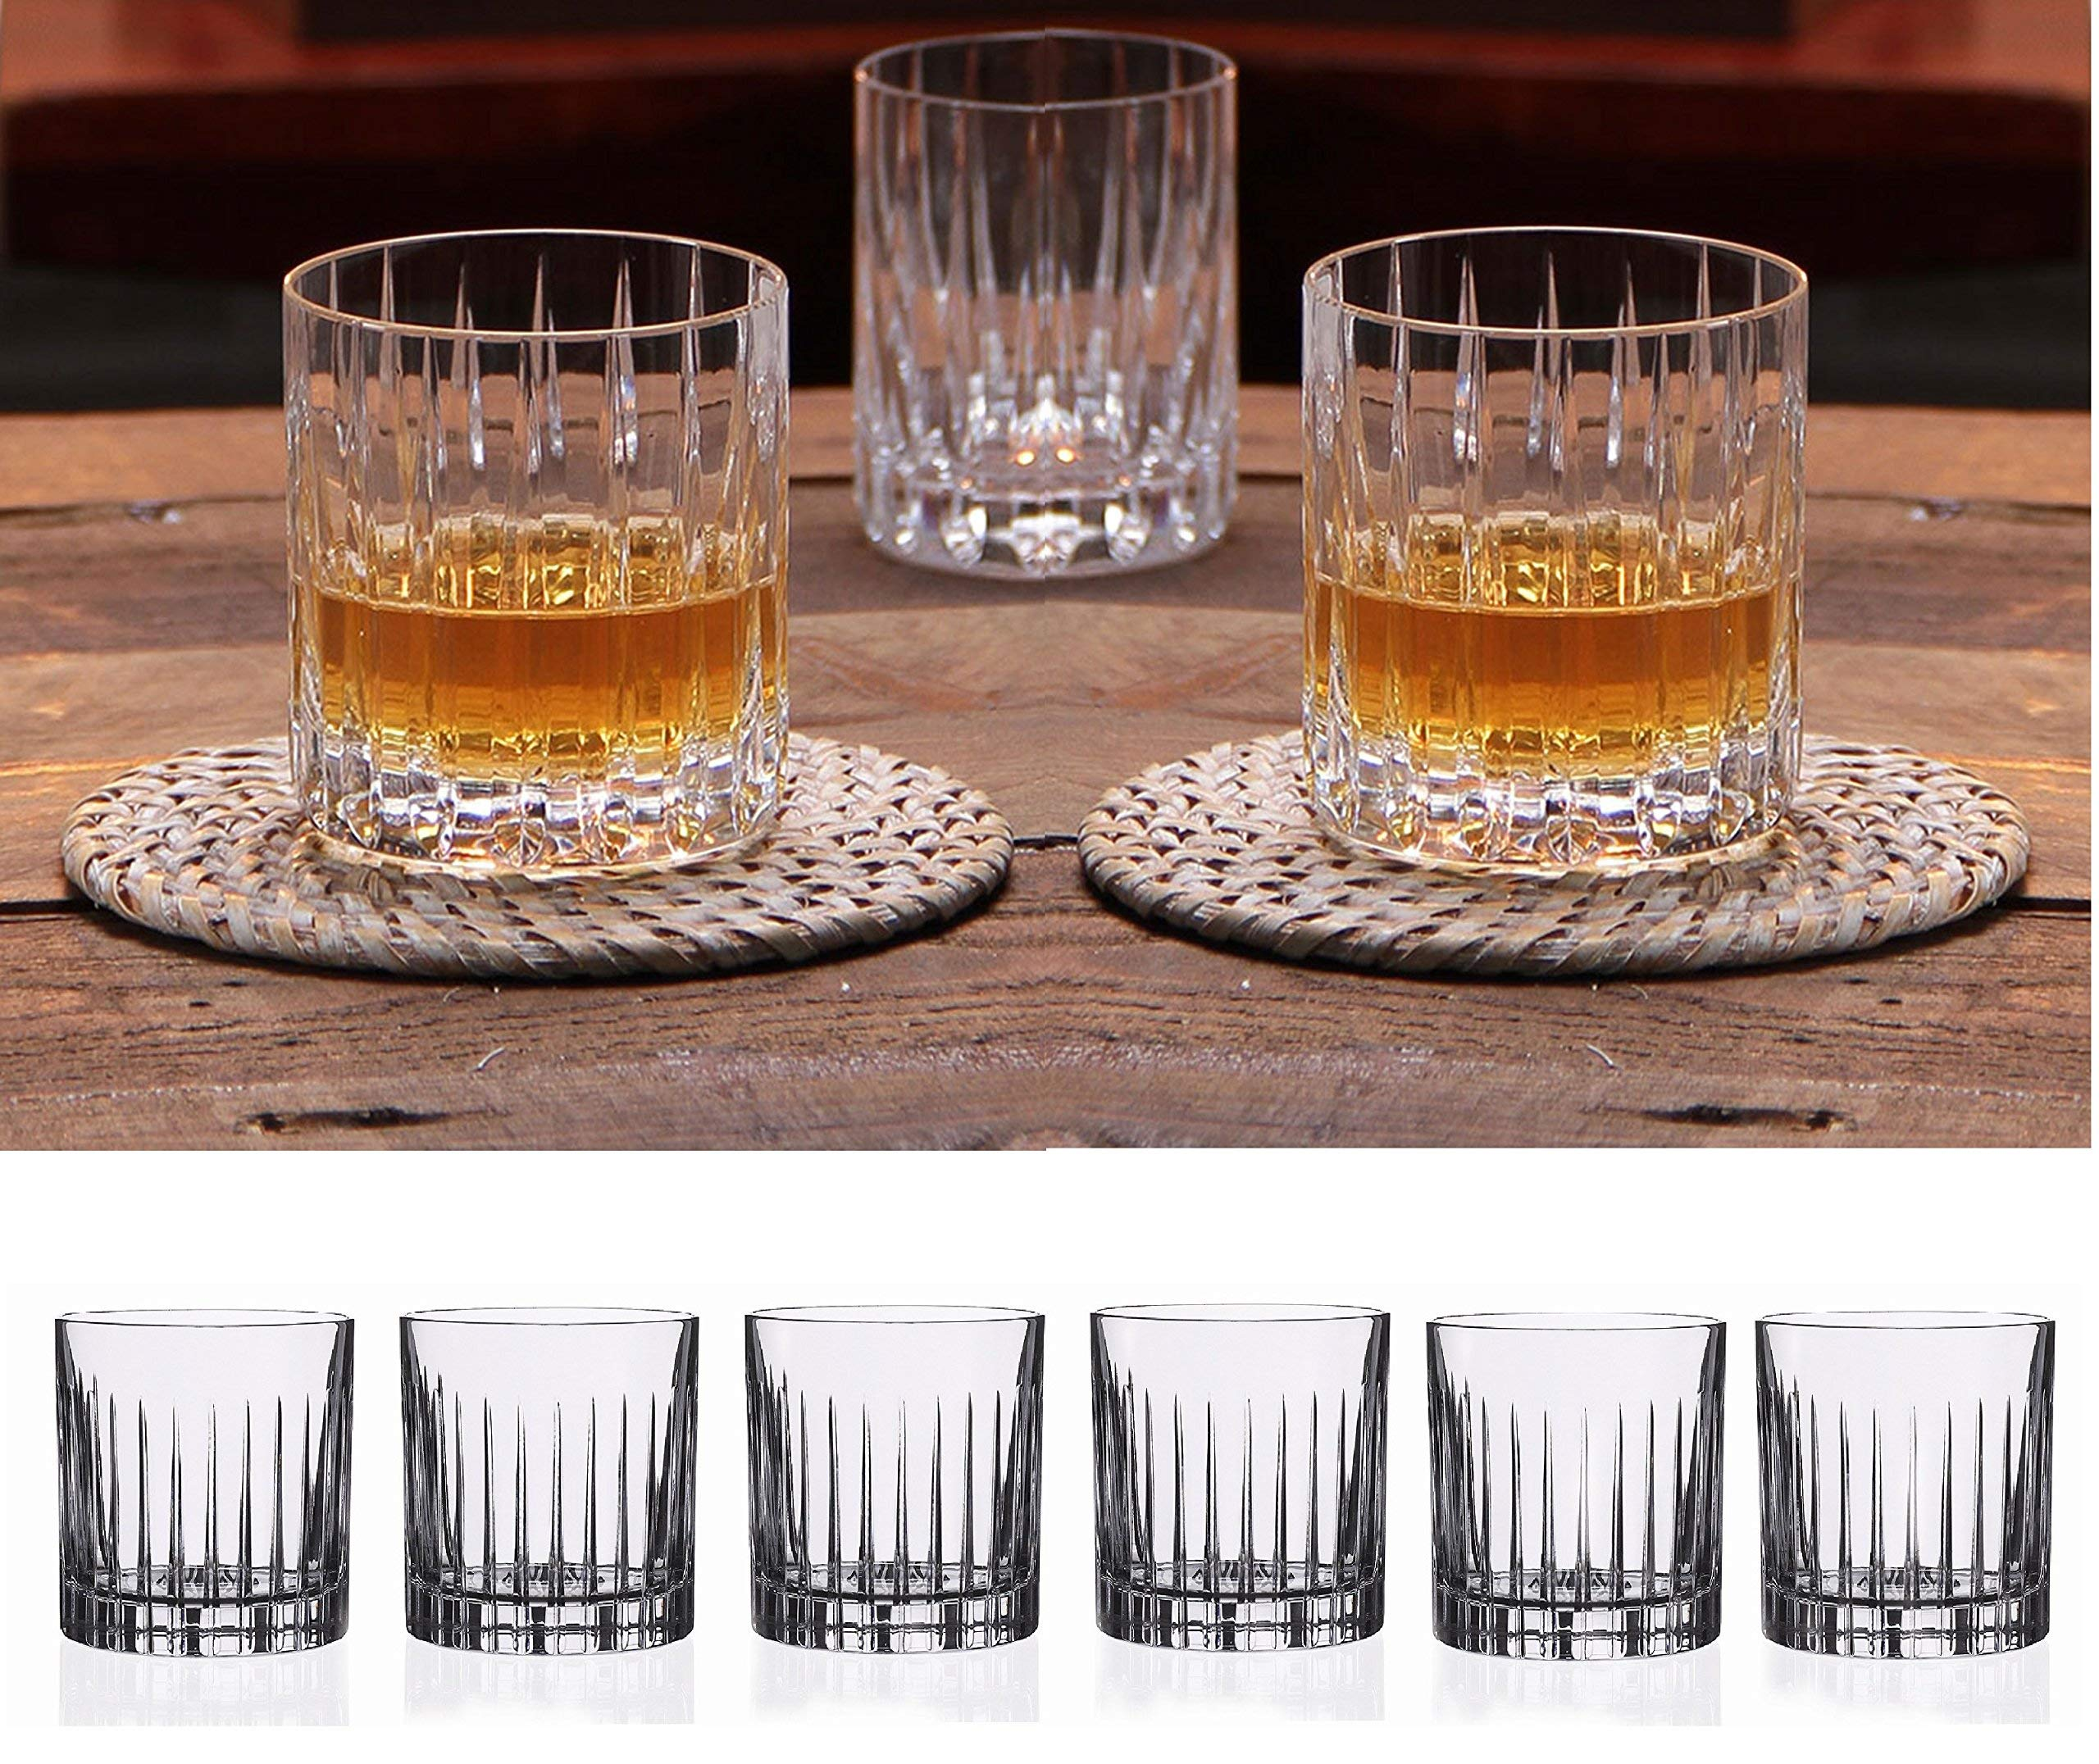 Double Old Fashioned Crystal Glasses, Set of 6, Perfect for serving scotch, whiskey or mixed drinks. (New York) pattern